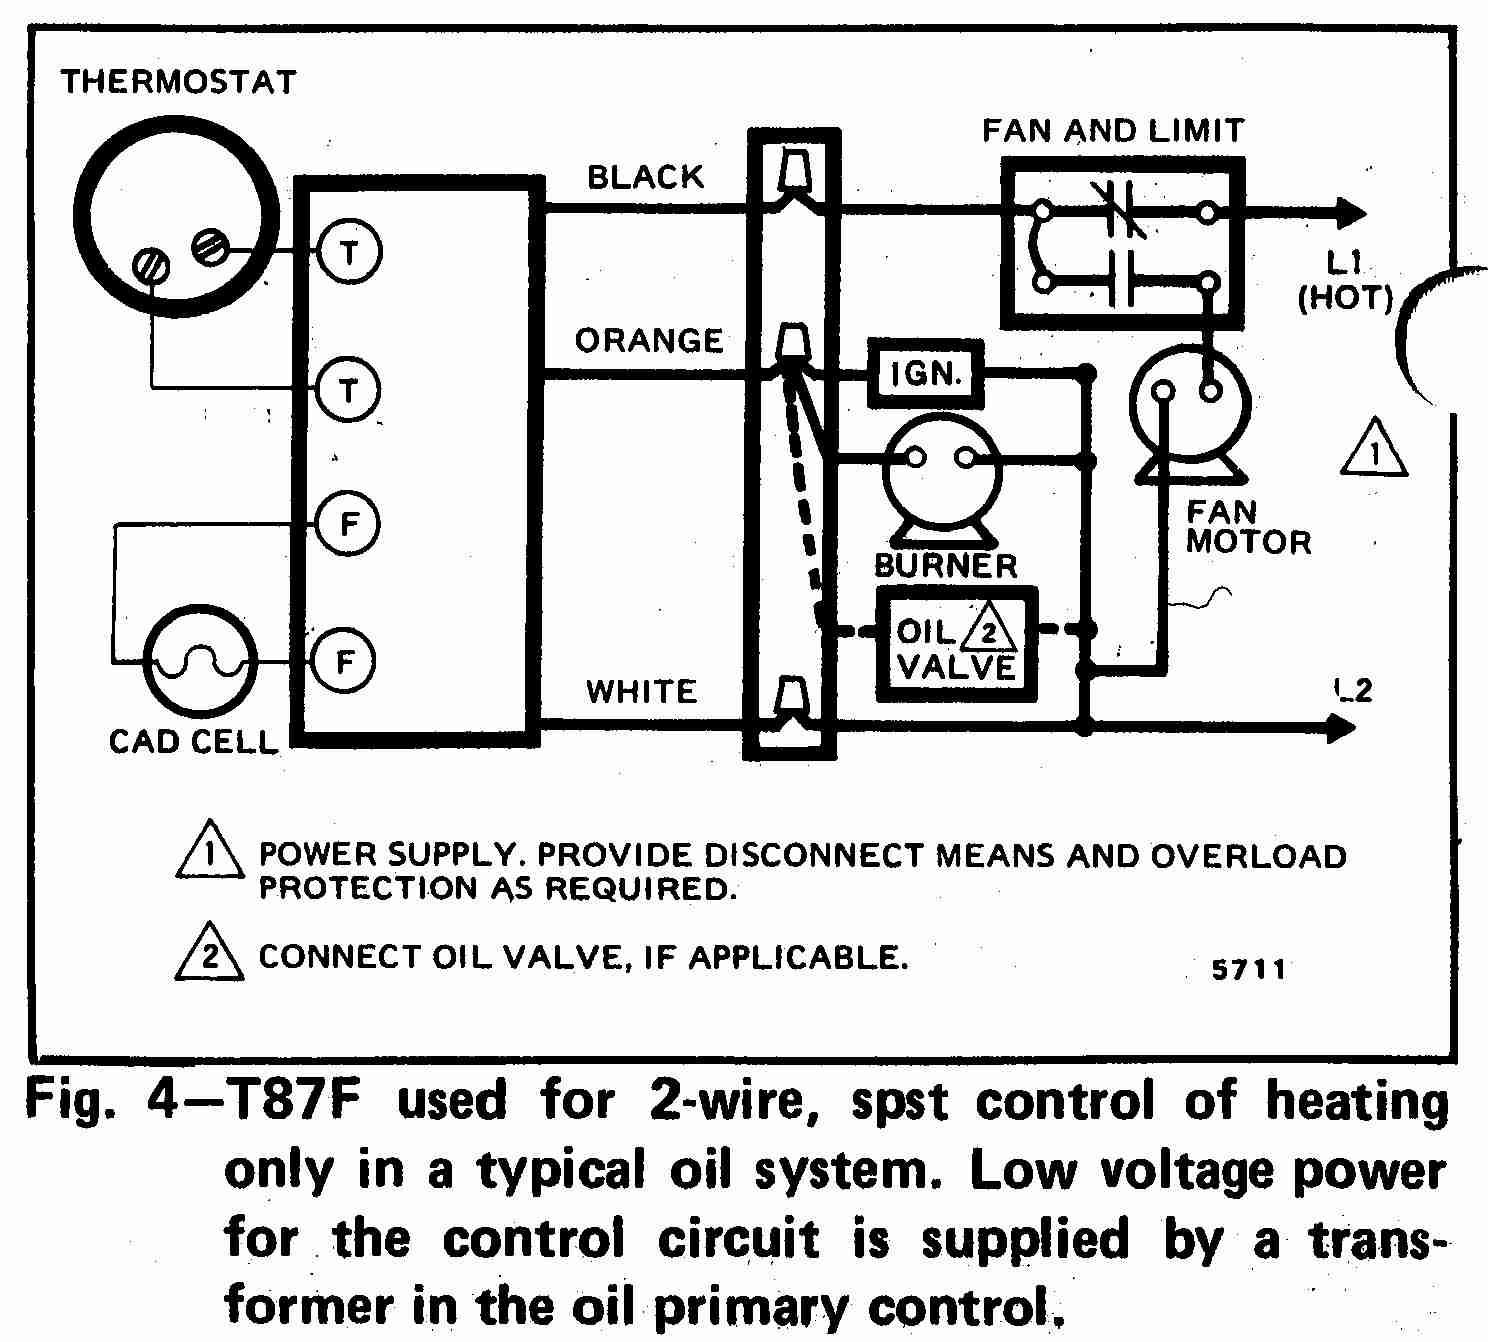 hight resolution of icp heat pump thermostat wiring diagram wiring diagram and ebooks u2022 elgin wiring schematic heil wiring schematic